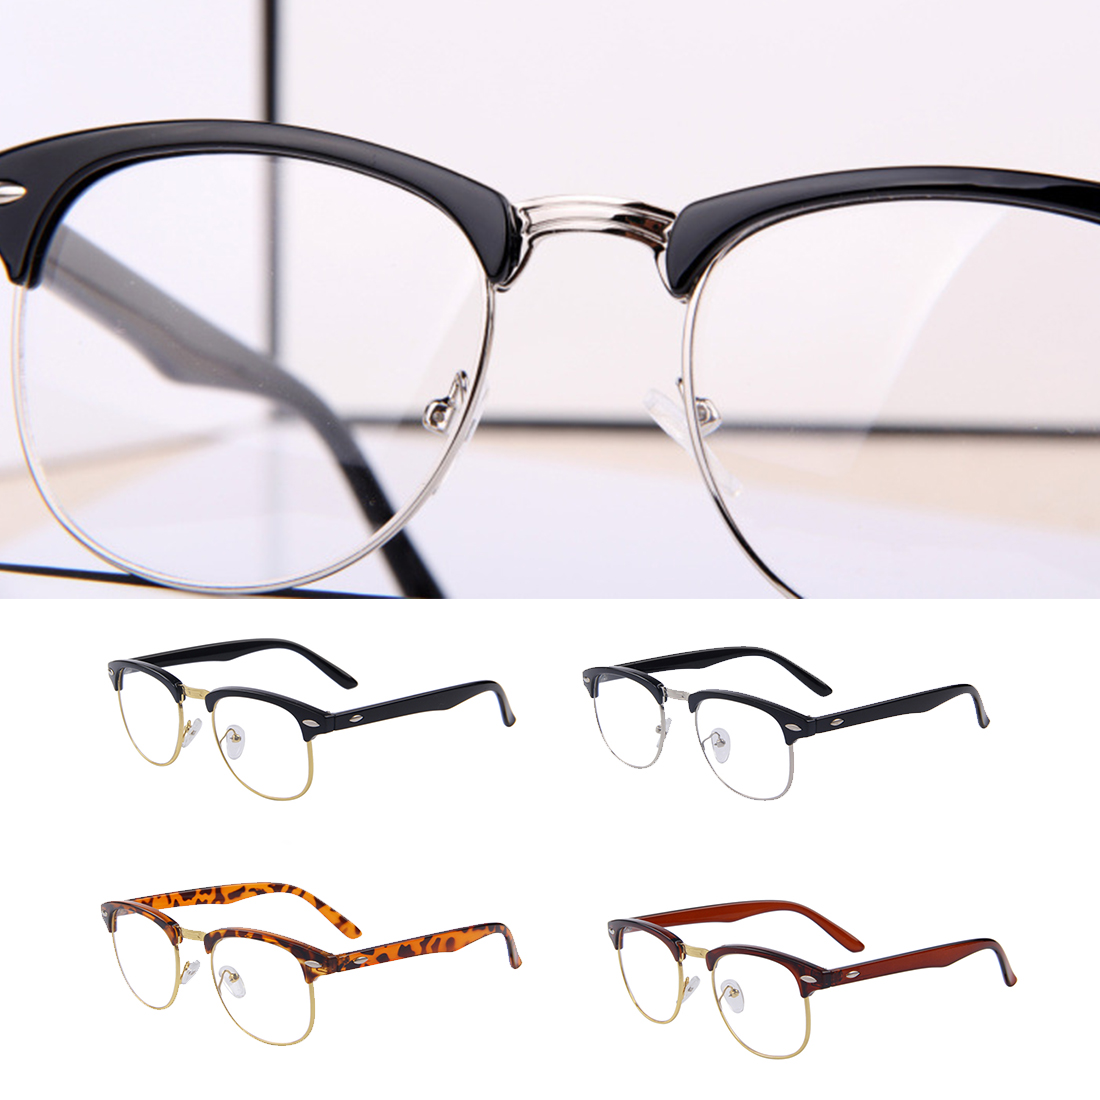 a7f1b6db24 1Pc Classic Retro Clear Lens Men Women Metal Half rimless Glasses Nerd Frames  Optical Eyeglasses Frame